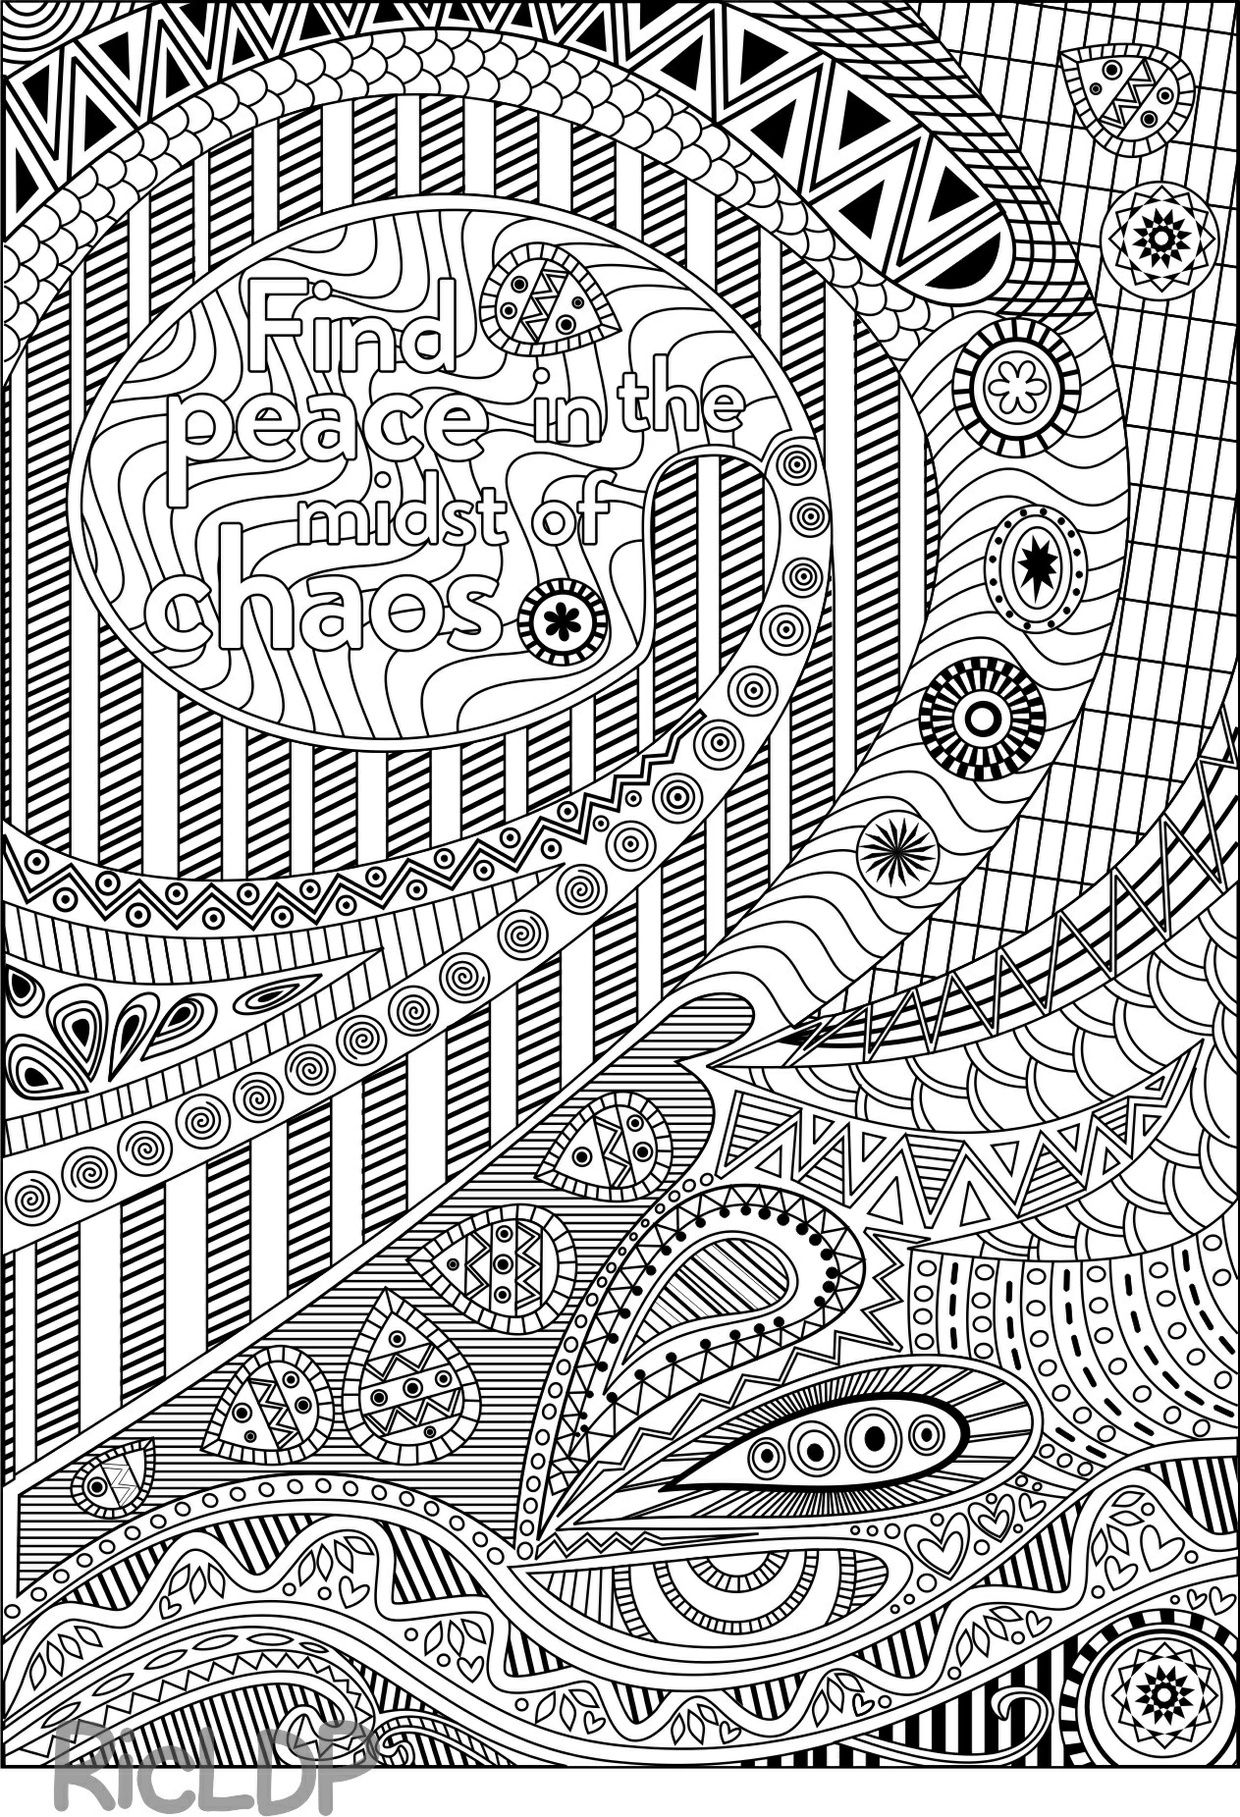 Find Peace In The Midst Of Chaos Coloring Page For Adults Adult